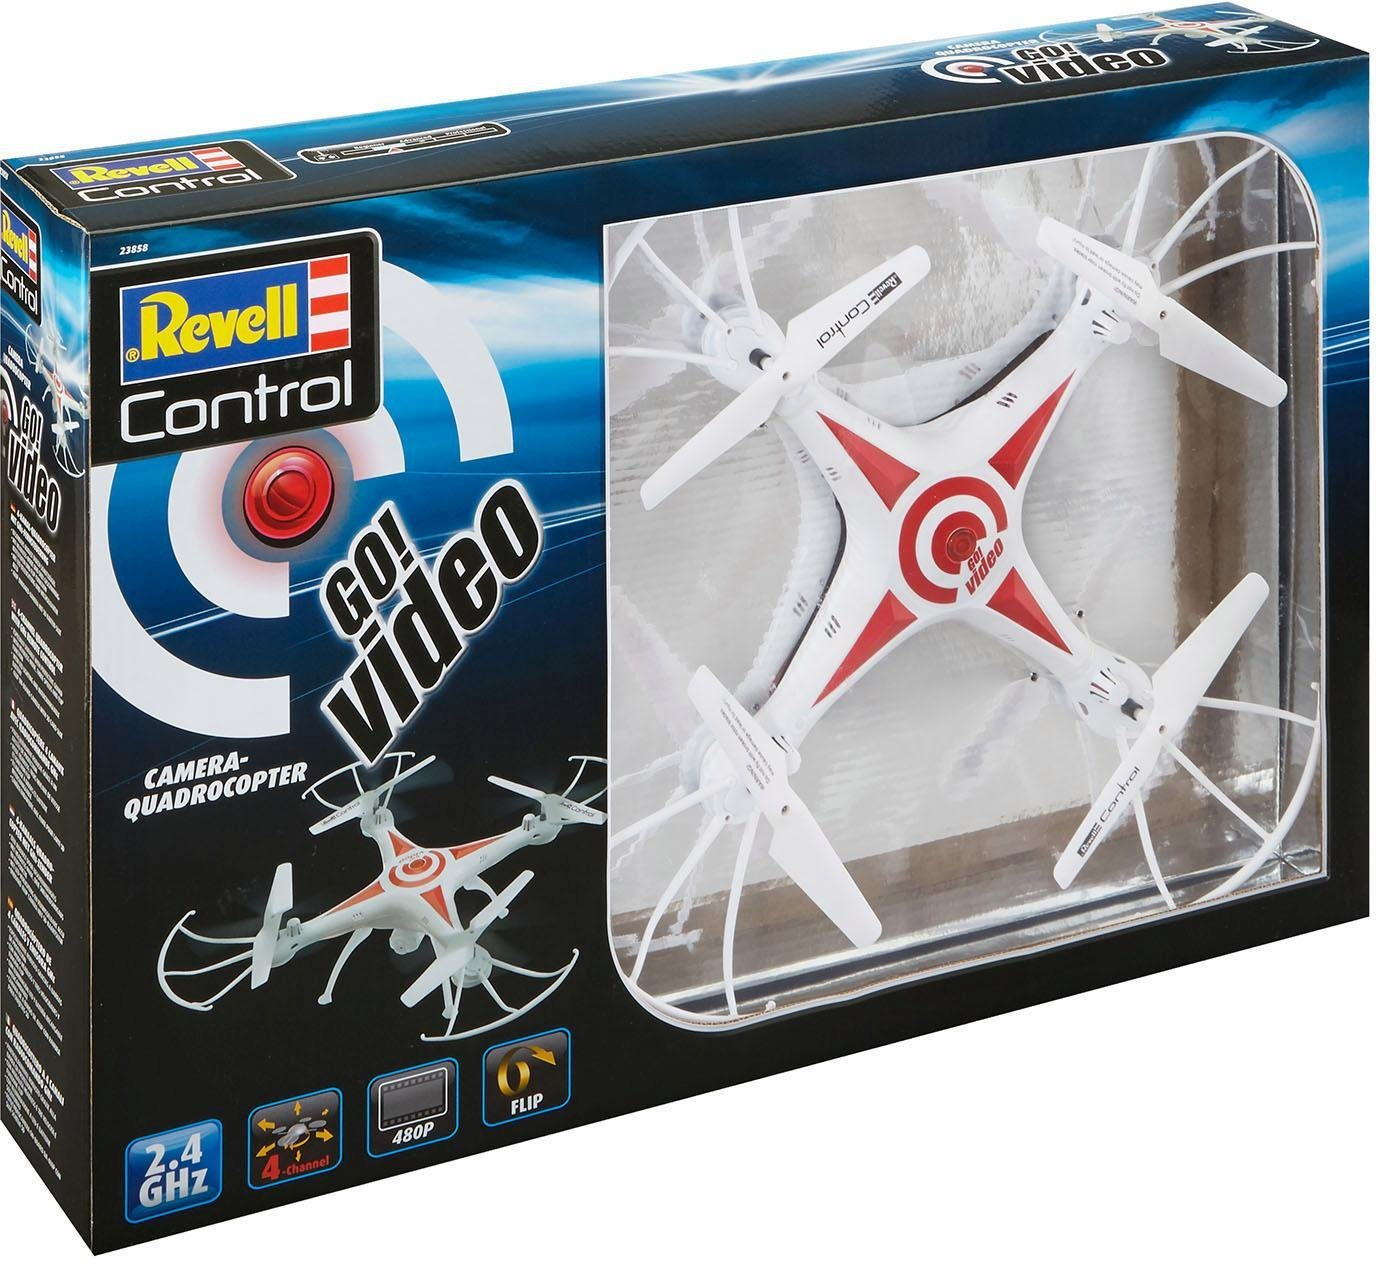 RC Drohne mit Kamera: Revell® control, Go! Video*